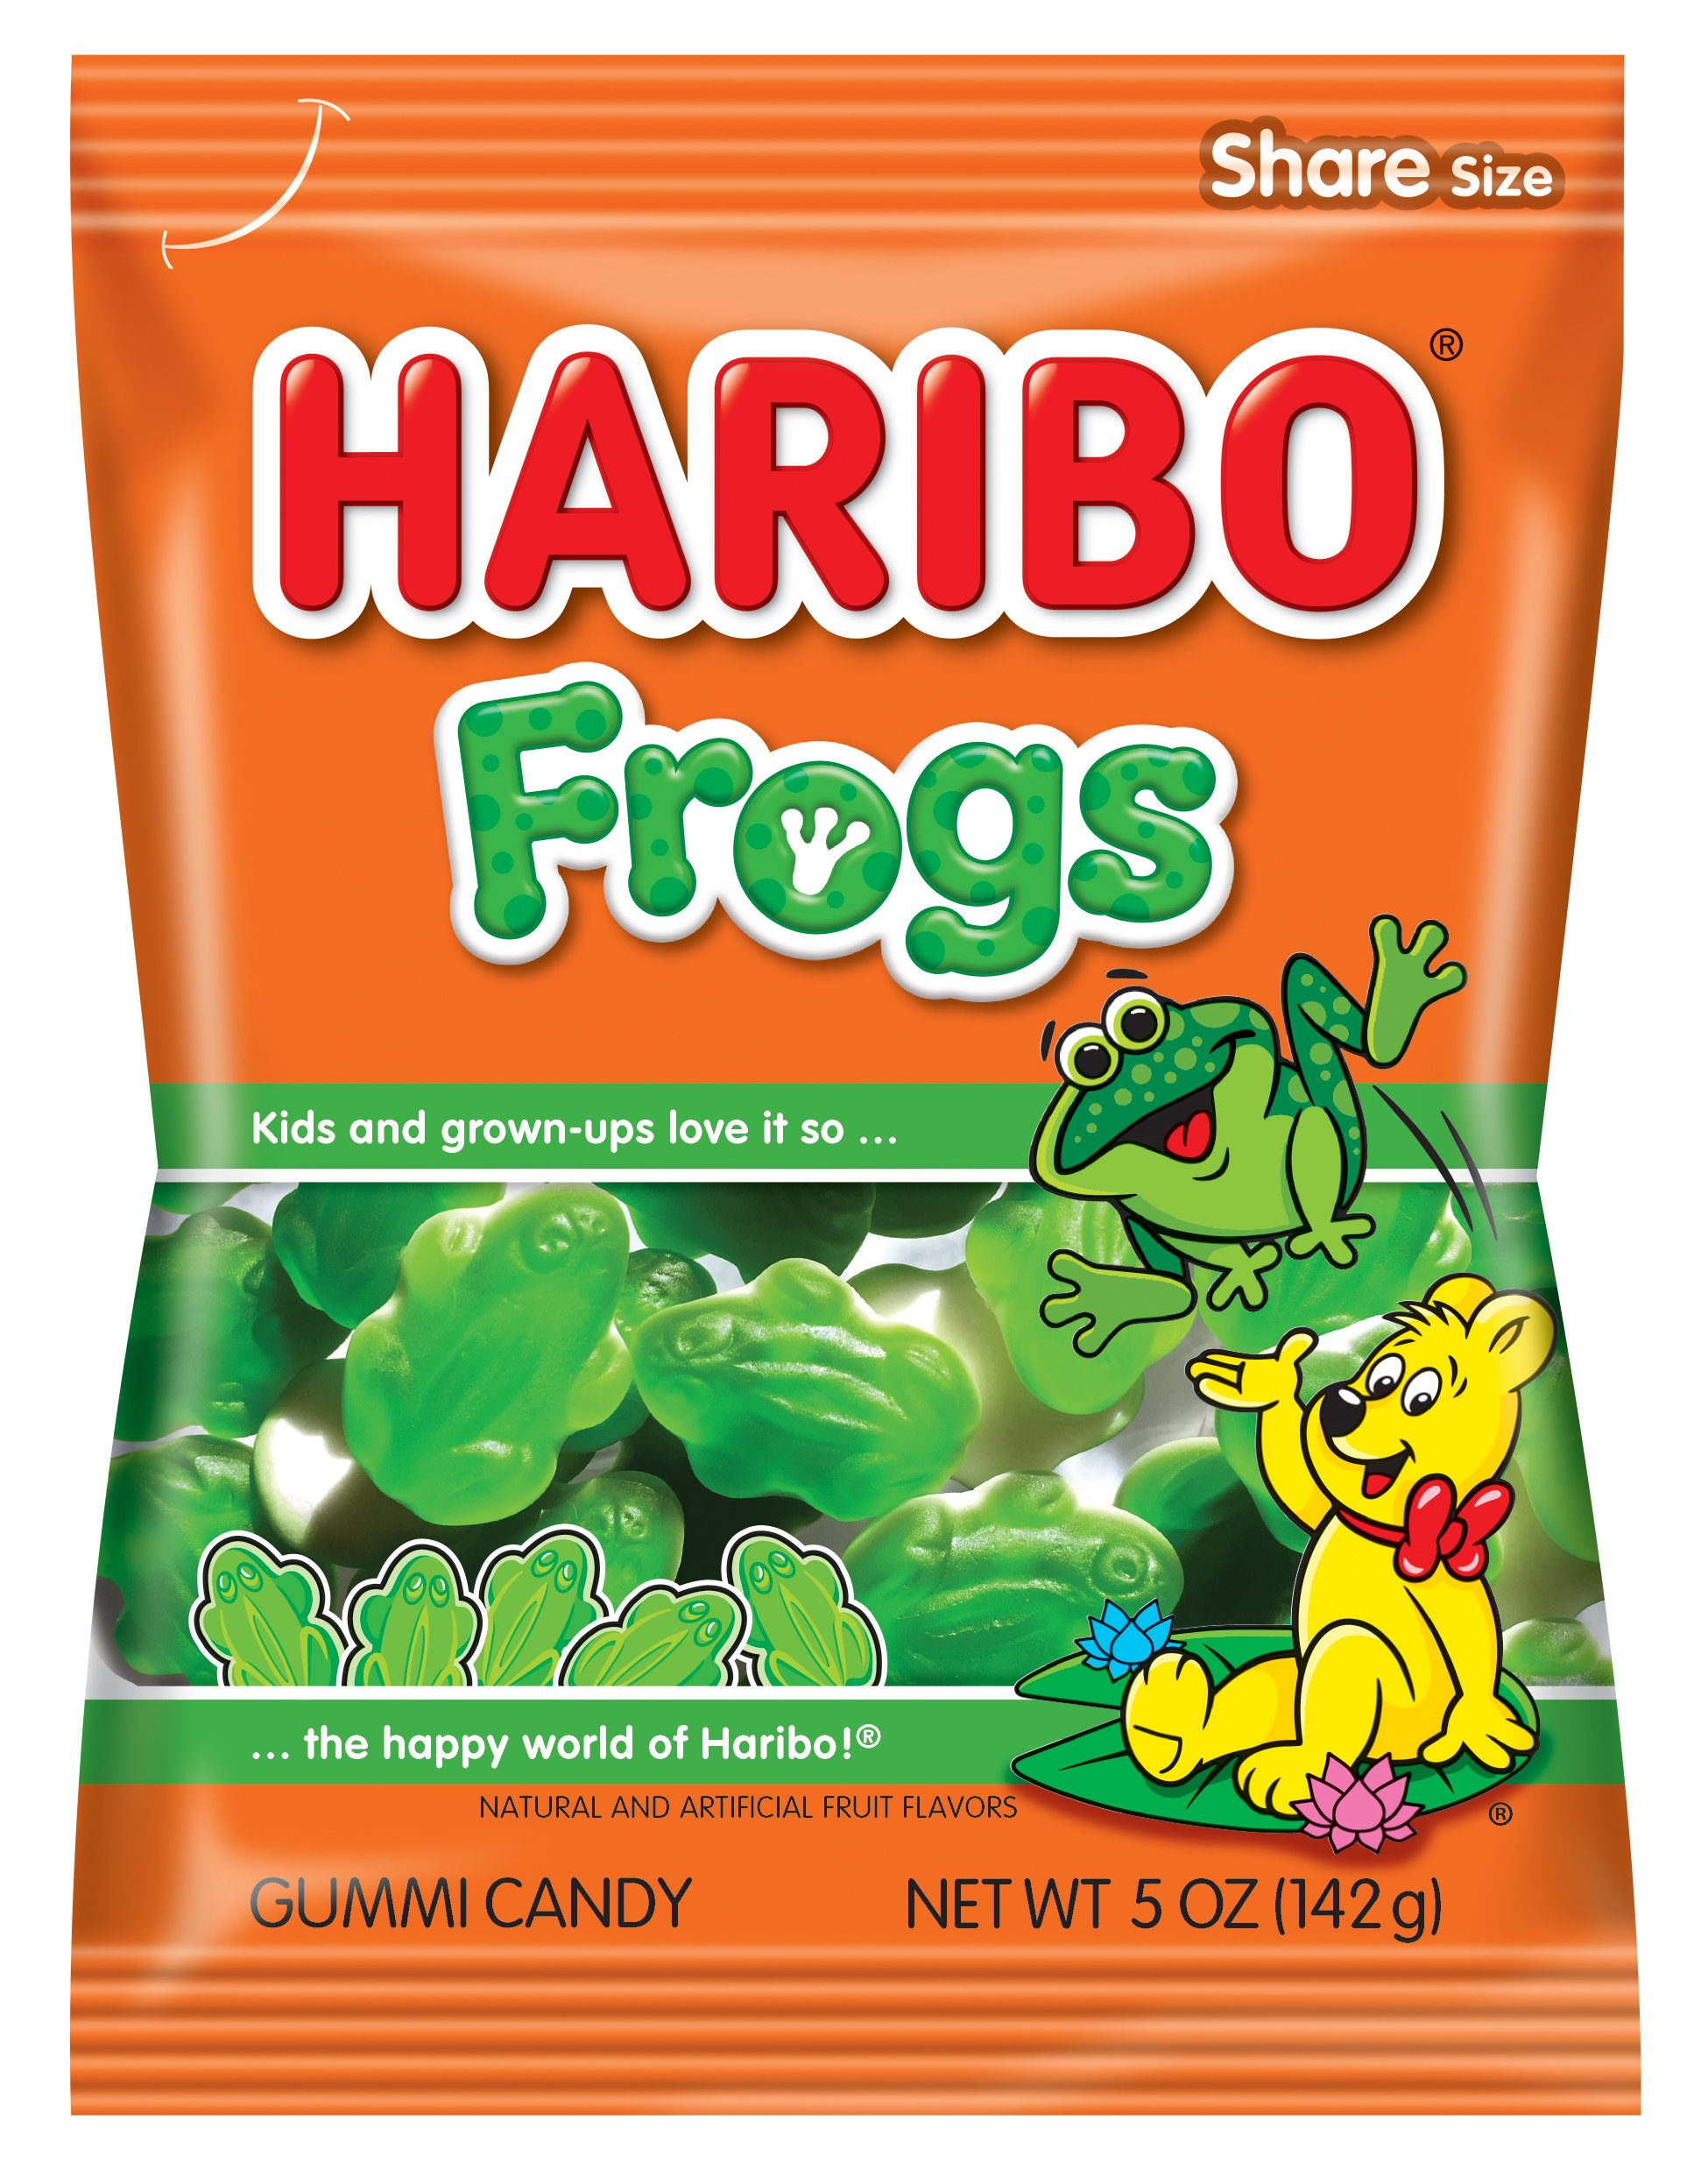 Put Down the Haribo: Sugars Affecting More Than Just Our Waistlines Put Down the Haribo: Sugars Affecting More Than Just Our Waistlines new images